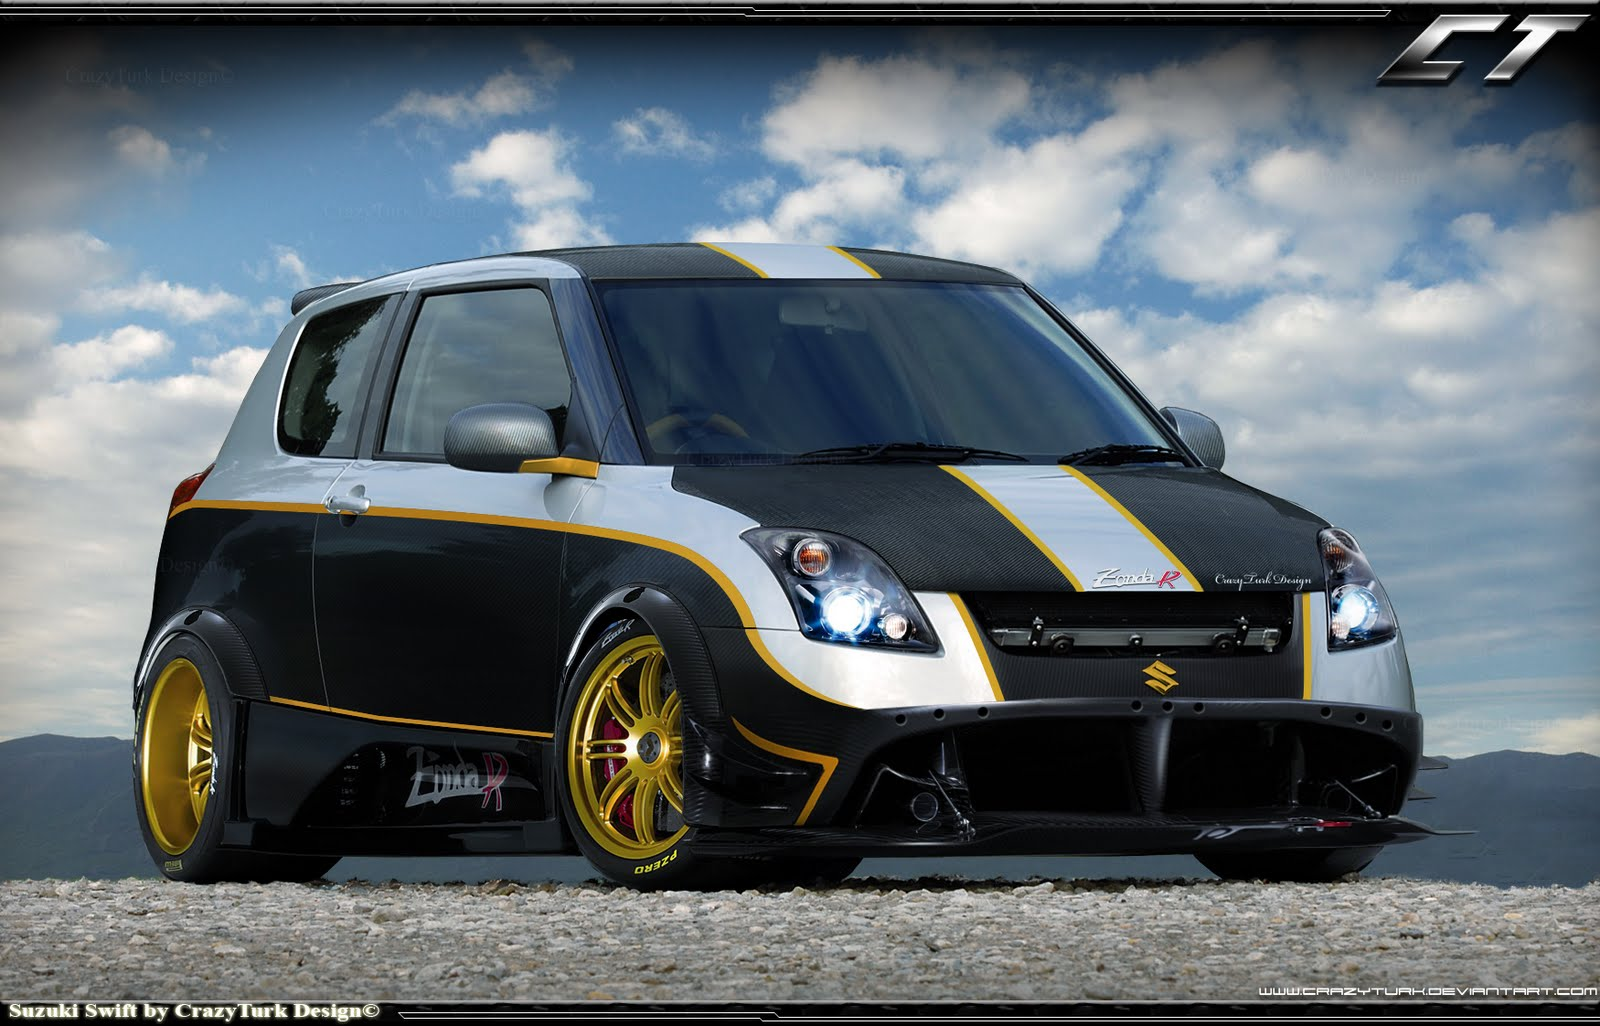 Cars Wallpapers: Wallpapers Background: Suzuki Swift Wallpapers